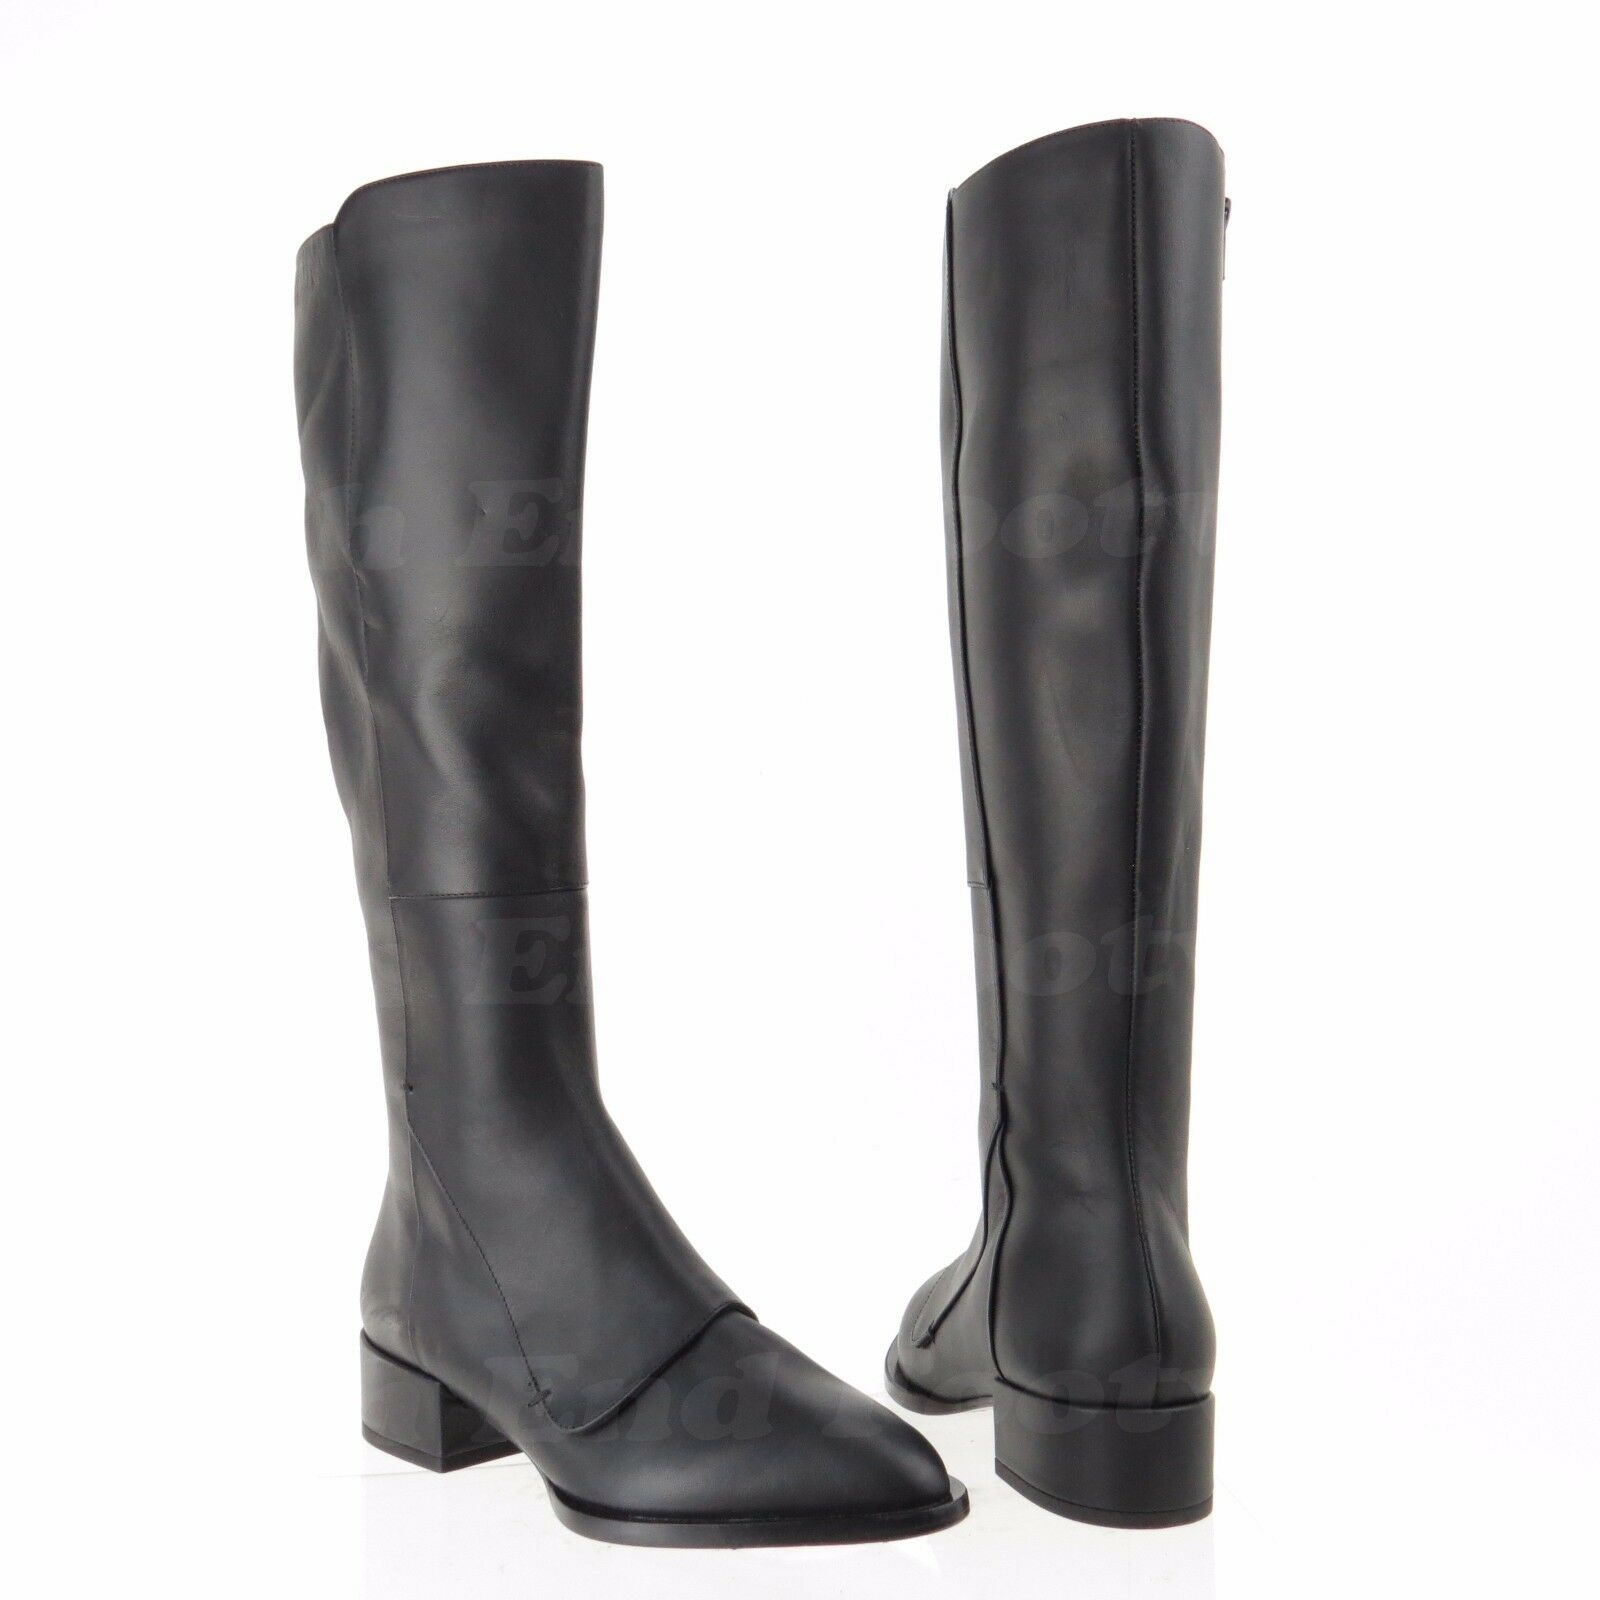 Vince Yilan Women's Black Leather Pointed Toe Knee High Boots Sz 5.5 M NEW  695